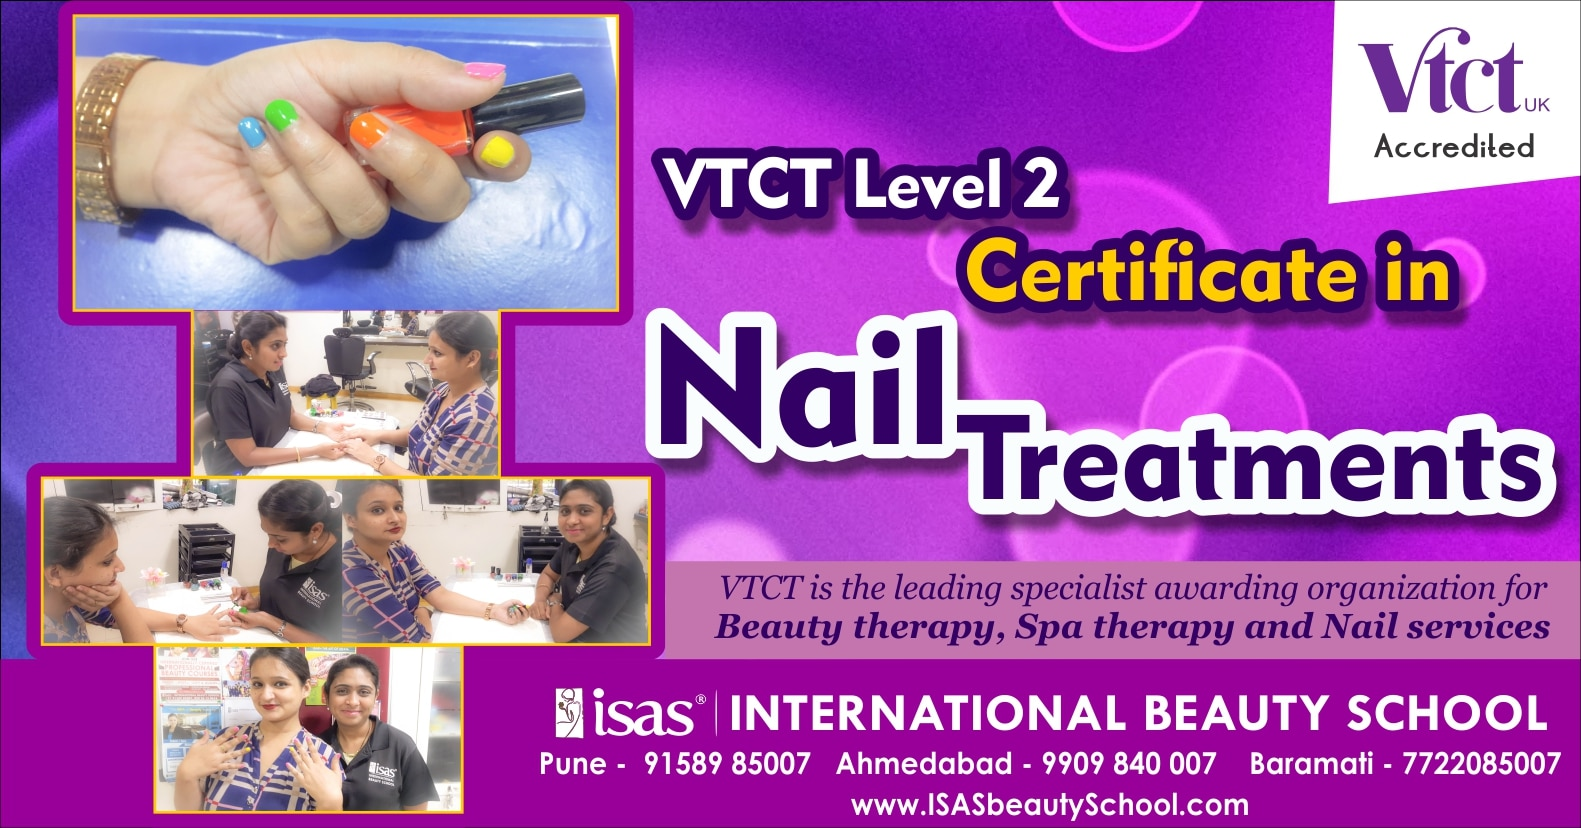 VTCT Level 2 Certificate in Nail Treatments  Enroll Today !  Only @ ISAS, International Beauty School !  Certificate & Diploma Courses: #Creative_Hair_Designing #Advanced_Beauty_& _ #SpaTherapy #Personal_Grooming #Professional_Makeup #NailExtension_& #Nail_Art #Diet_& #_Nutrition  1st Floor, Zodiac Plaza, Near Nabard Flat, H.L. Comm. College  Road, Navrangpura Ahmedabad - 9 Ph. +91 99098 40007, +91 8469255255, 26300007 www.isasbeautyschool.com  Makeup: Prosthetic Makeup in Ahmedabad, 3d Makeup in Ahmedabad, Advanced Make Up Courses in Ahmedabad, Bridal Make Up Course in Ahmedabad, Courses In Make Up in Ahmedabad, Hair & Make Up Courses In India in Ahmedabad,  Makeup Courses in India, International Beauty School in Ahmedabad, make Up Classes in Ahmedabad,  Makeup Courses in Ahmedabad, Makeup Artist Courses in Ahmedabad, Makeup Artistry Courses in Ahmedabad, Makeup Course in Ahmedabad    Hair: Hair Dressing Courses in Ahmedabad, Courses in Hair in Ahmedabad, Hair Courses in India in Ahmedabad, Hair  Courses in India, Hair Courses in Ahmedabad, Hair Cutting Classes in Ahmedabad, Hair Classes in Ahmedabad,  Hair Courses in Ahmedabad, Part Time Make Up Courses in Ahmedabad, Personal Make Up Courses in Ahmedabad, Professional Make  Up Course in Ahmedabad,    Massage: Indian Head Massage in Ahmedabad, Foot Reflexology in Ahmedabad, Ayurvedic  Massages in Ahmedabad, Aroma Therapy Courses in Ahmedabad,   Beauty: Cidesco Courses in Ahmedabad, Cidesco Qualifications in Ahmedabad, Cidesco Course in Ahmedabad, Best Cidesco  School in Ahmedabad, Cidesco Center in Ahmedabad, Vtct Center in Ahmedabad, Vtct School, Vtct Course in Ahmedabad, Spa Courses in Ahmedabad, The Academy Of Make Up and Beauty in Ahmedabad, the Beauty Academy in Ahmedabad, Salon Management Course in Ahmedabad, Spa Management Course in Ahmedabad, Cidesco Beauty  Therapy Course in Ahmedabad, Salon Spa Management Course in Ahmedabad, Personality Development Course in Ahmedabad, Personal Grooming Courses in Ahmeda